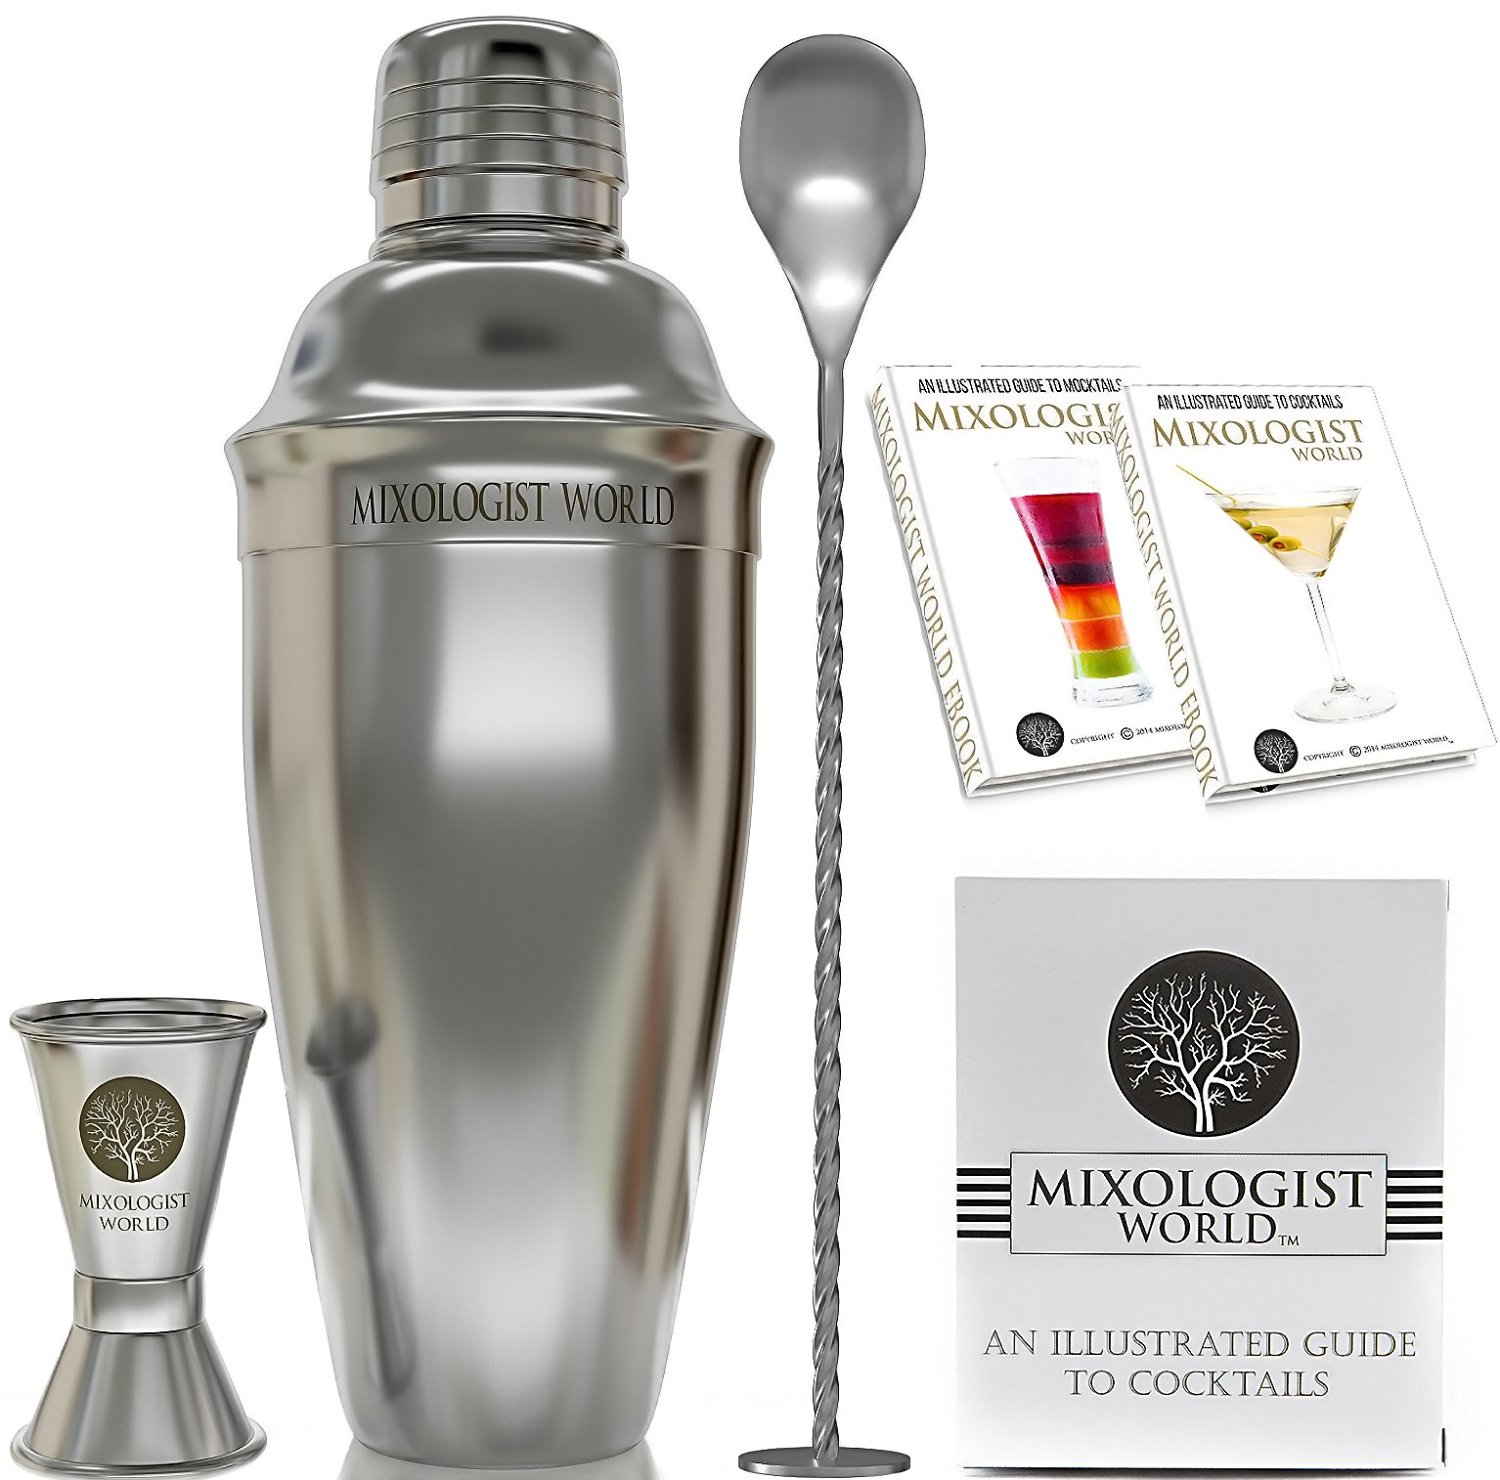 Amazon Deal – Mixologist World Cocktail Shaker Set Only $16.67